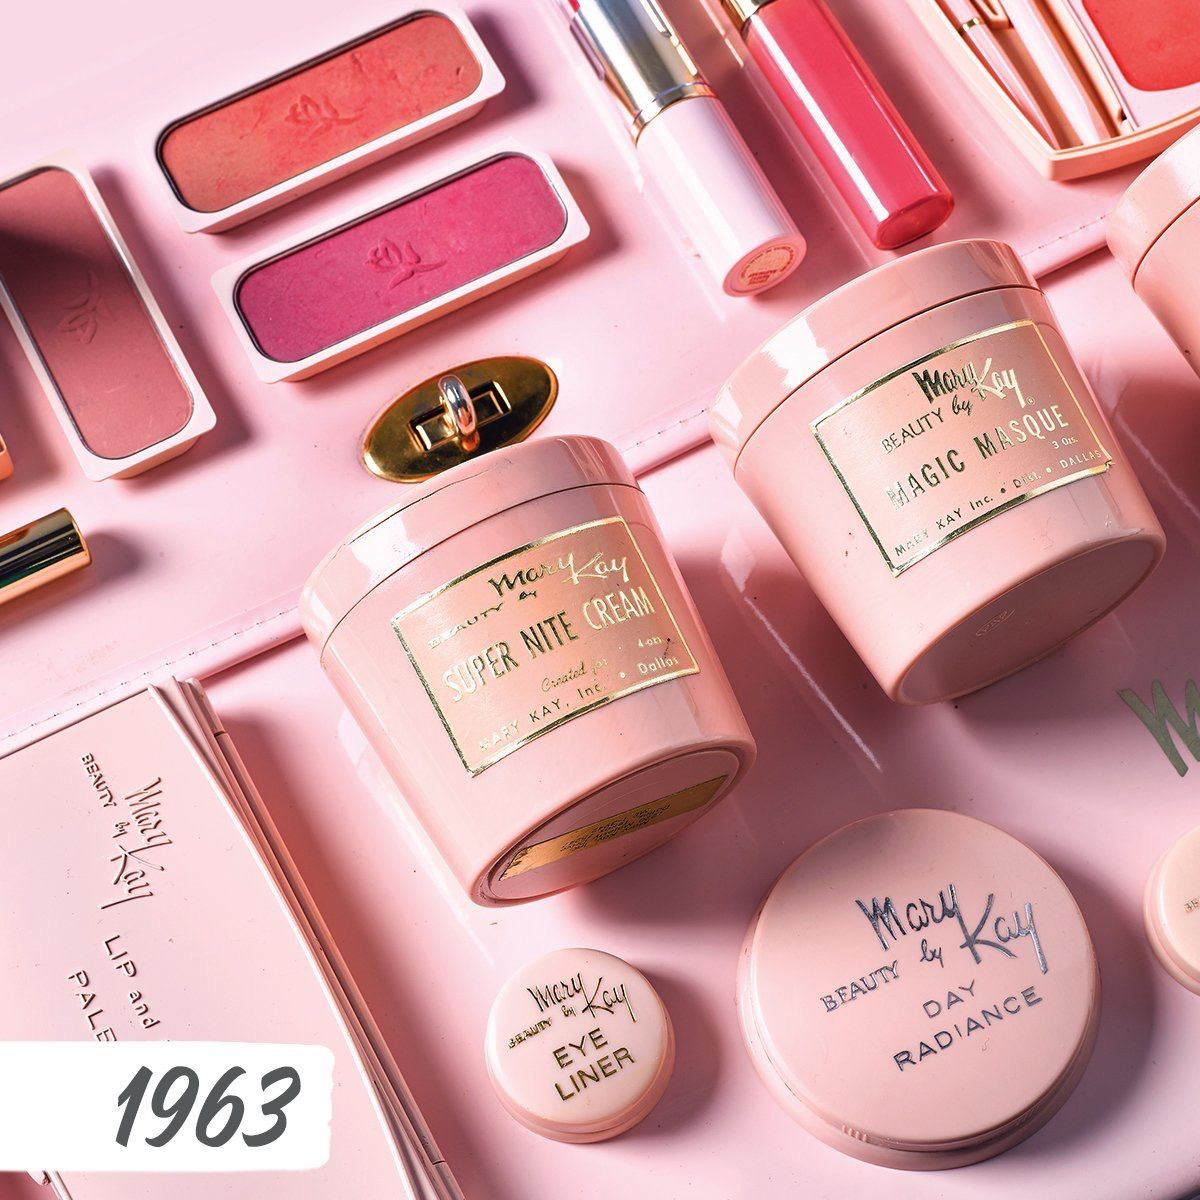 Celebrating Throwback With A Photo Of Some Vintage Mary Kay Products Mary Kay Cosmetics Mary Kay Selling Mary Kay